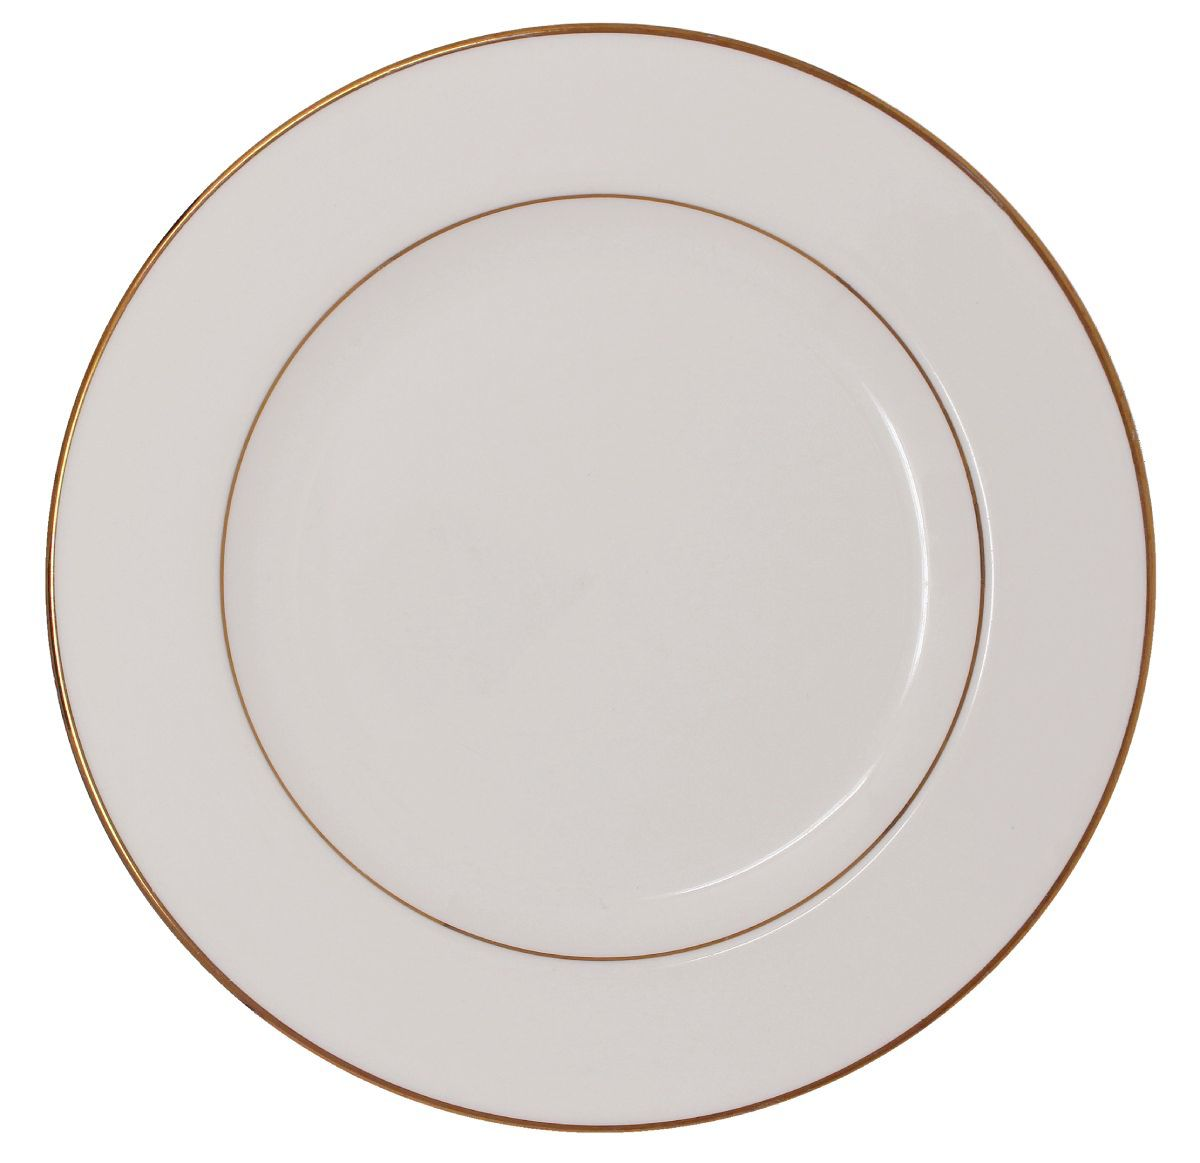 Dinner Plate Beige With Gold Band 10""